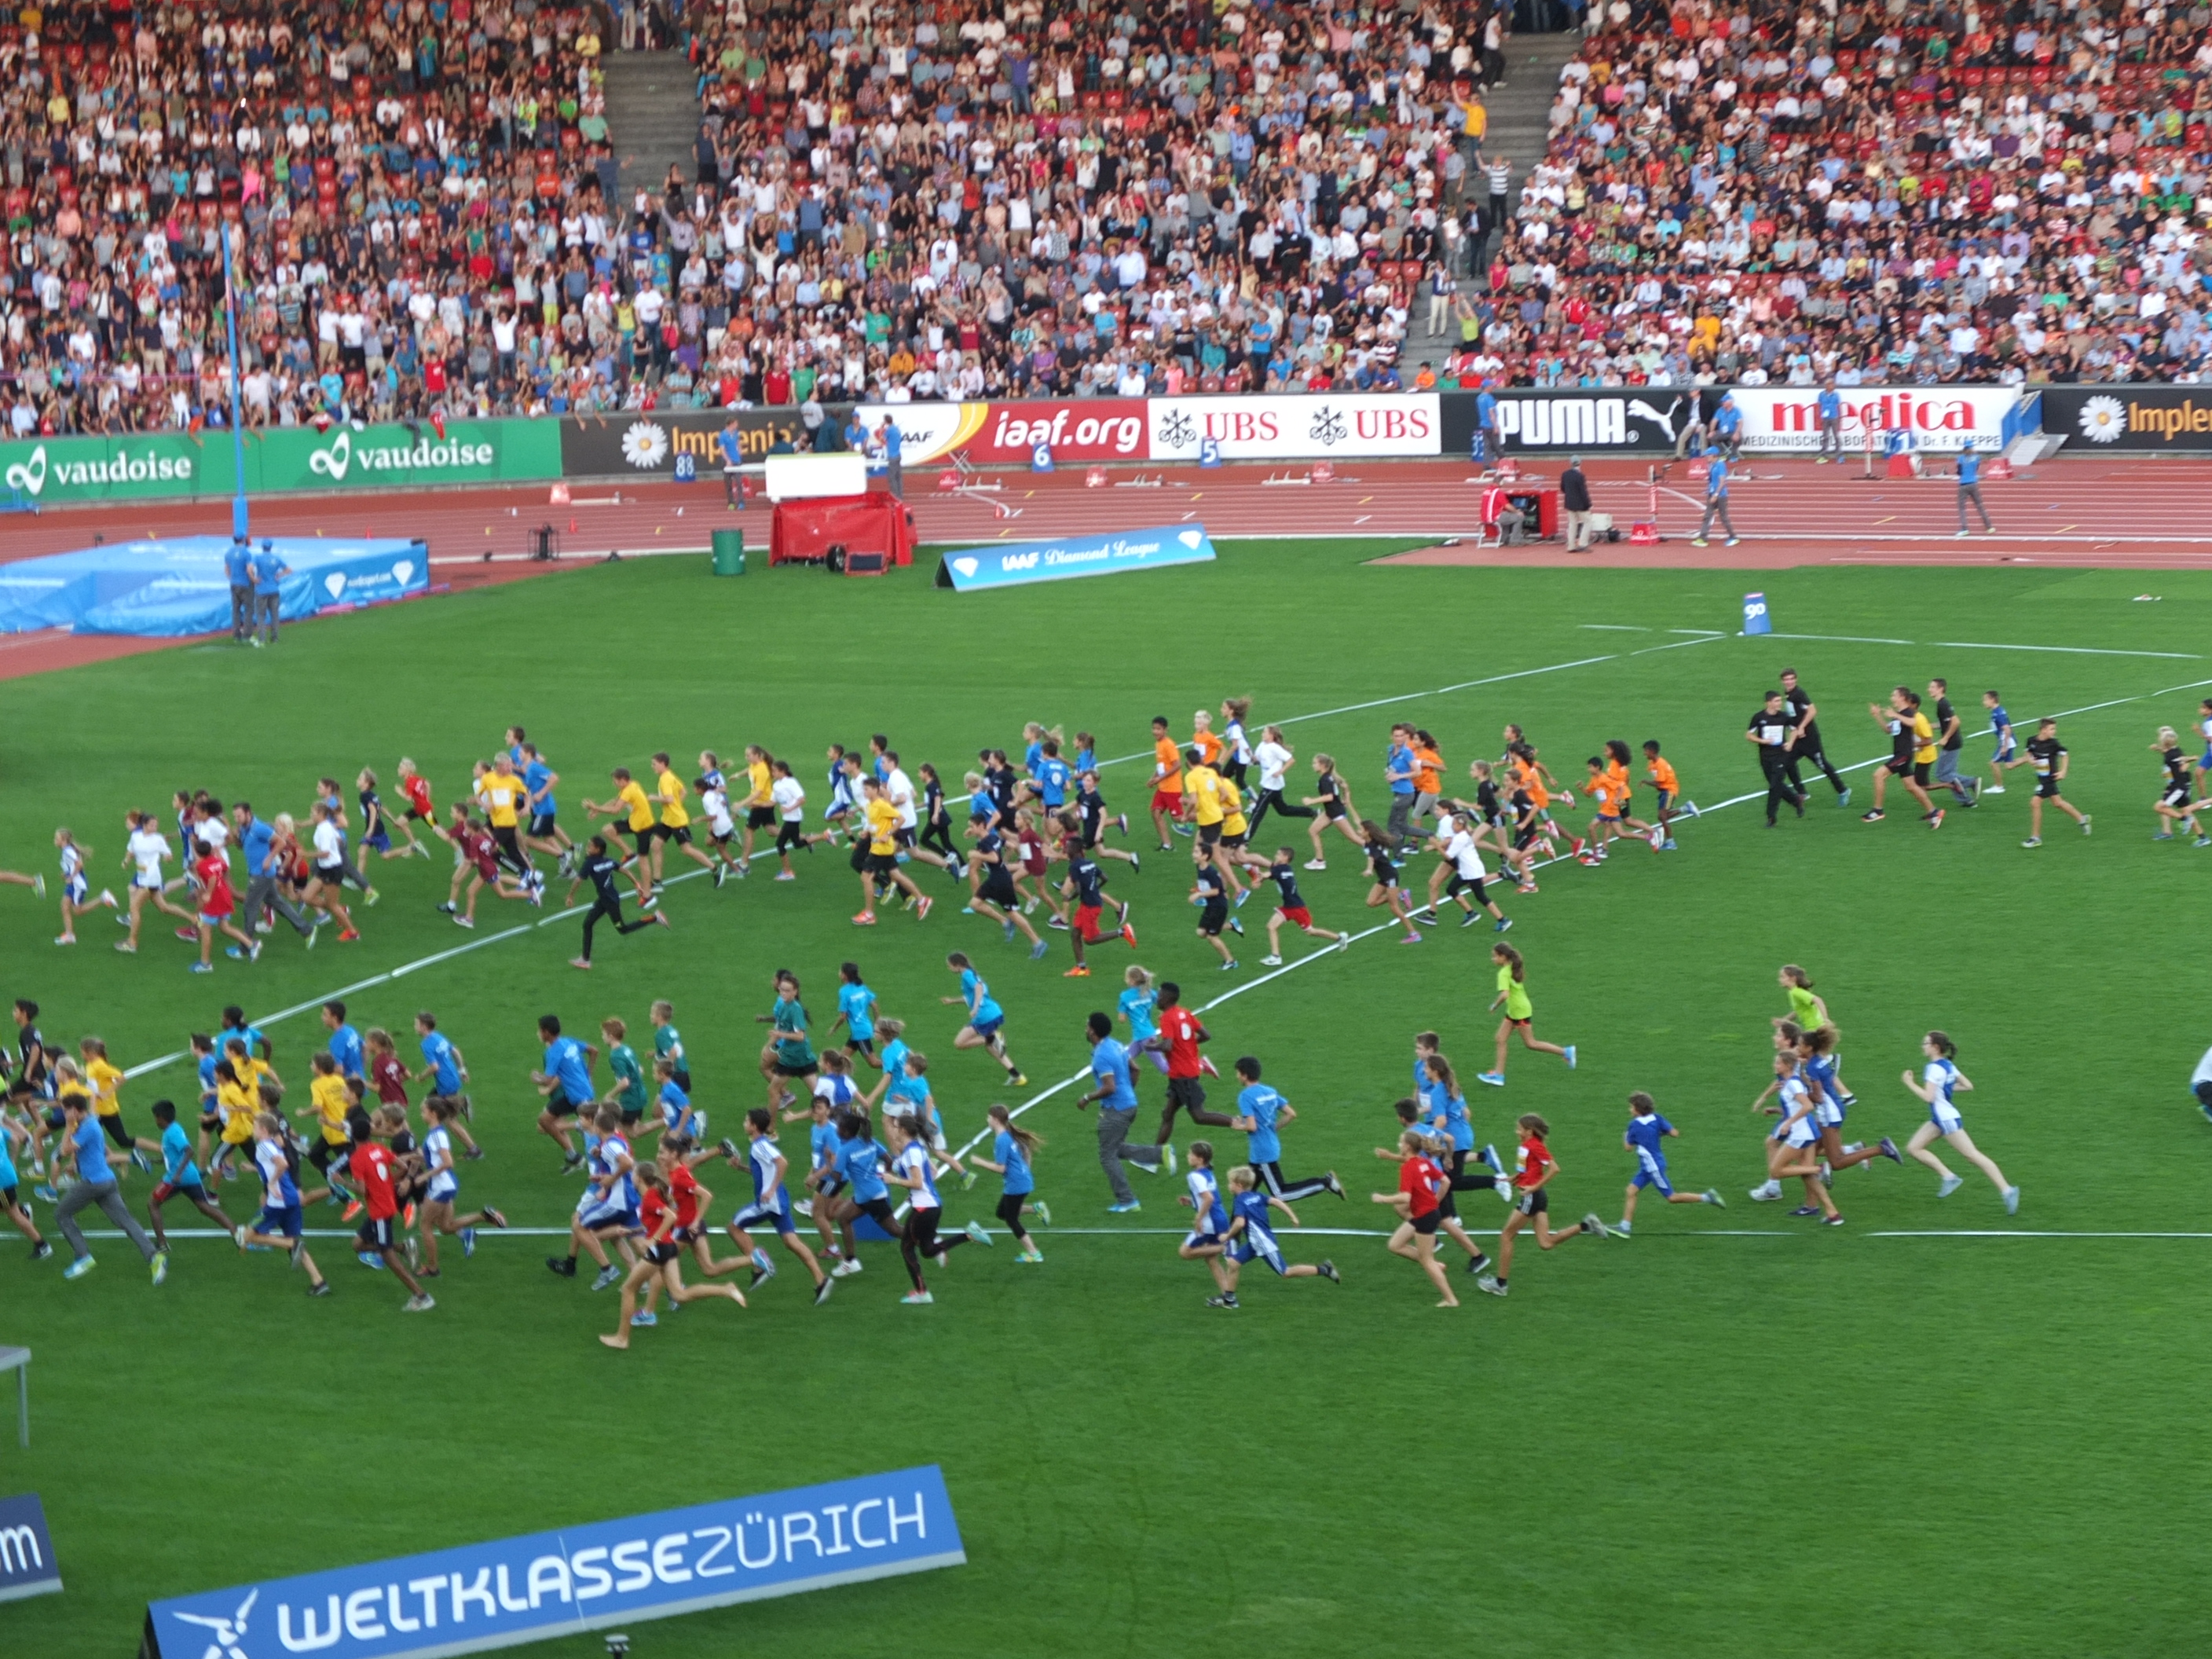 Kids at Weltklasse Zurich